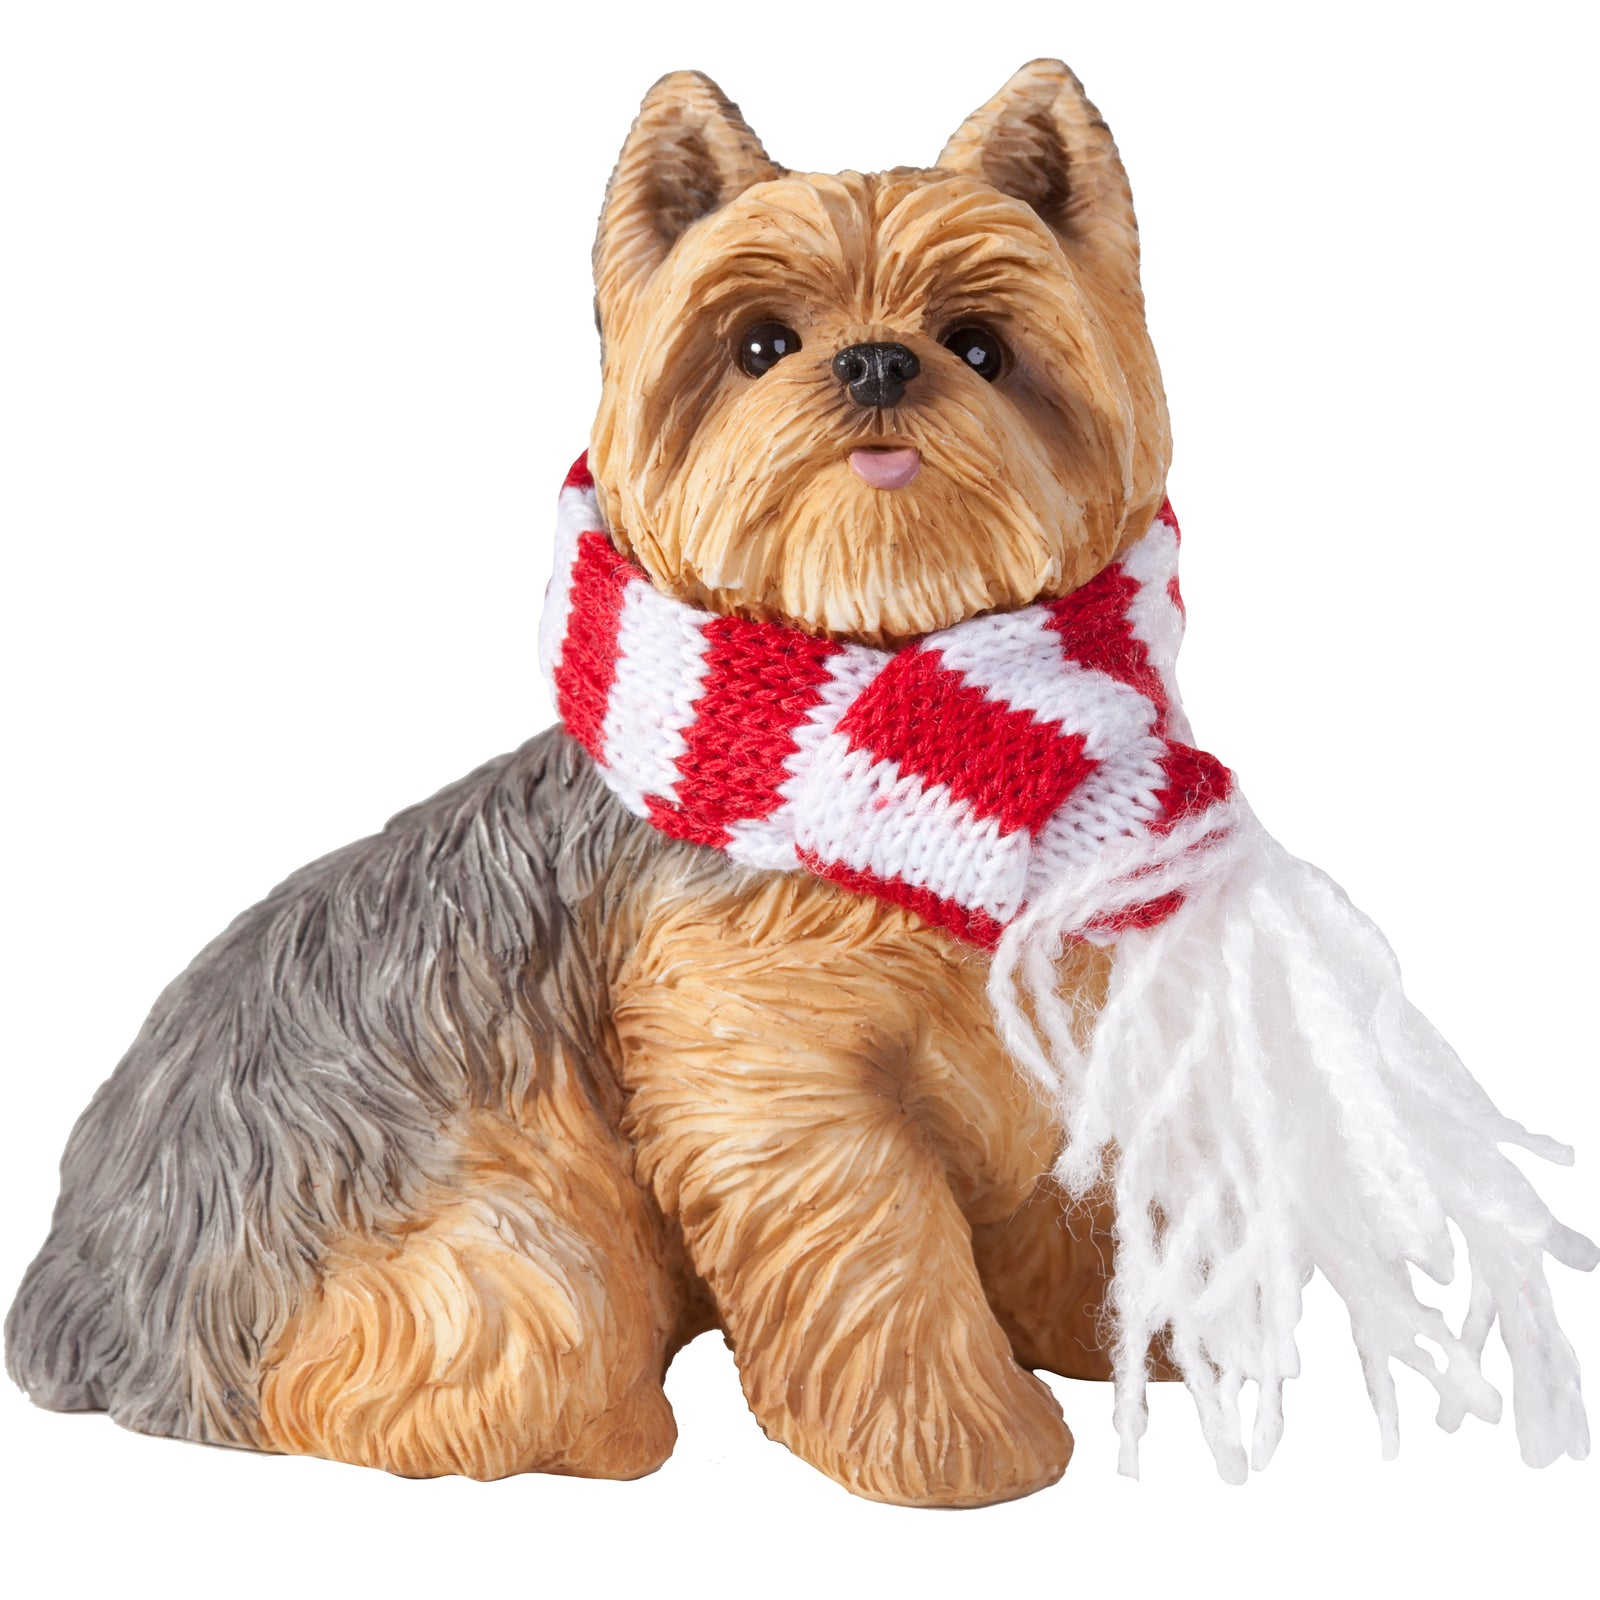 Sandicast Sitting Yorkshire Terrier w/ Scarf Christmas Dog Ornament